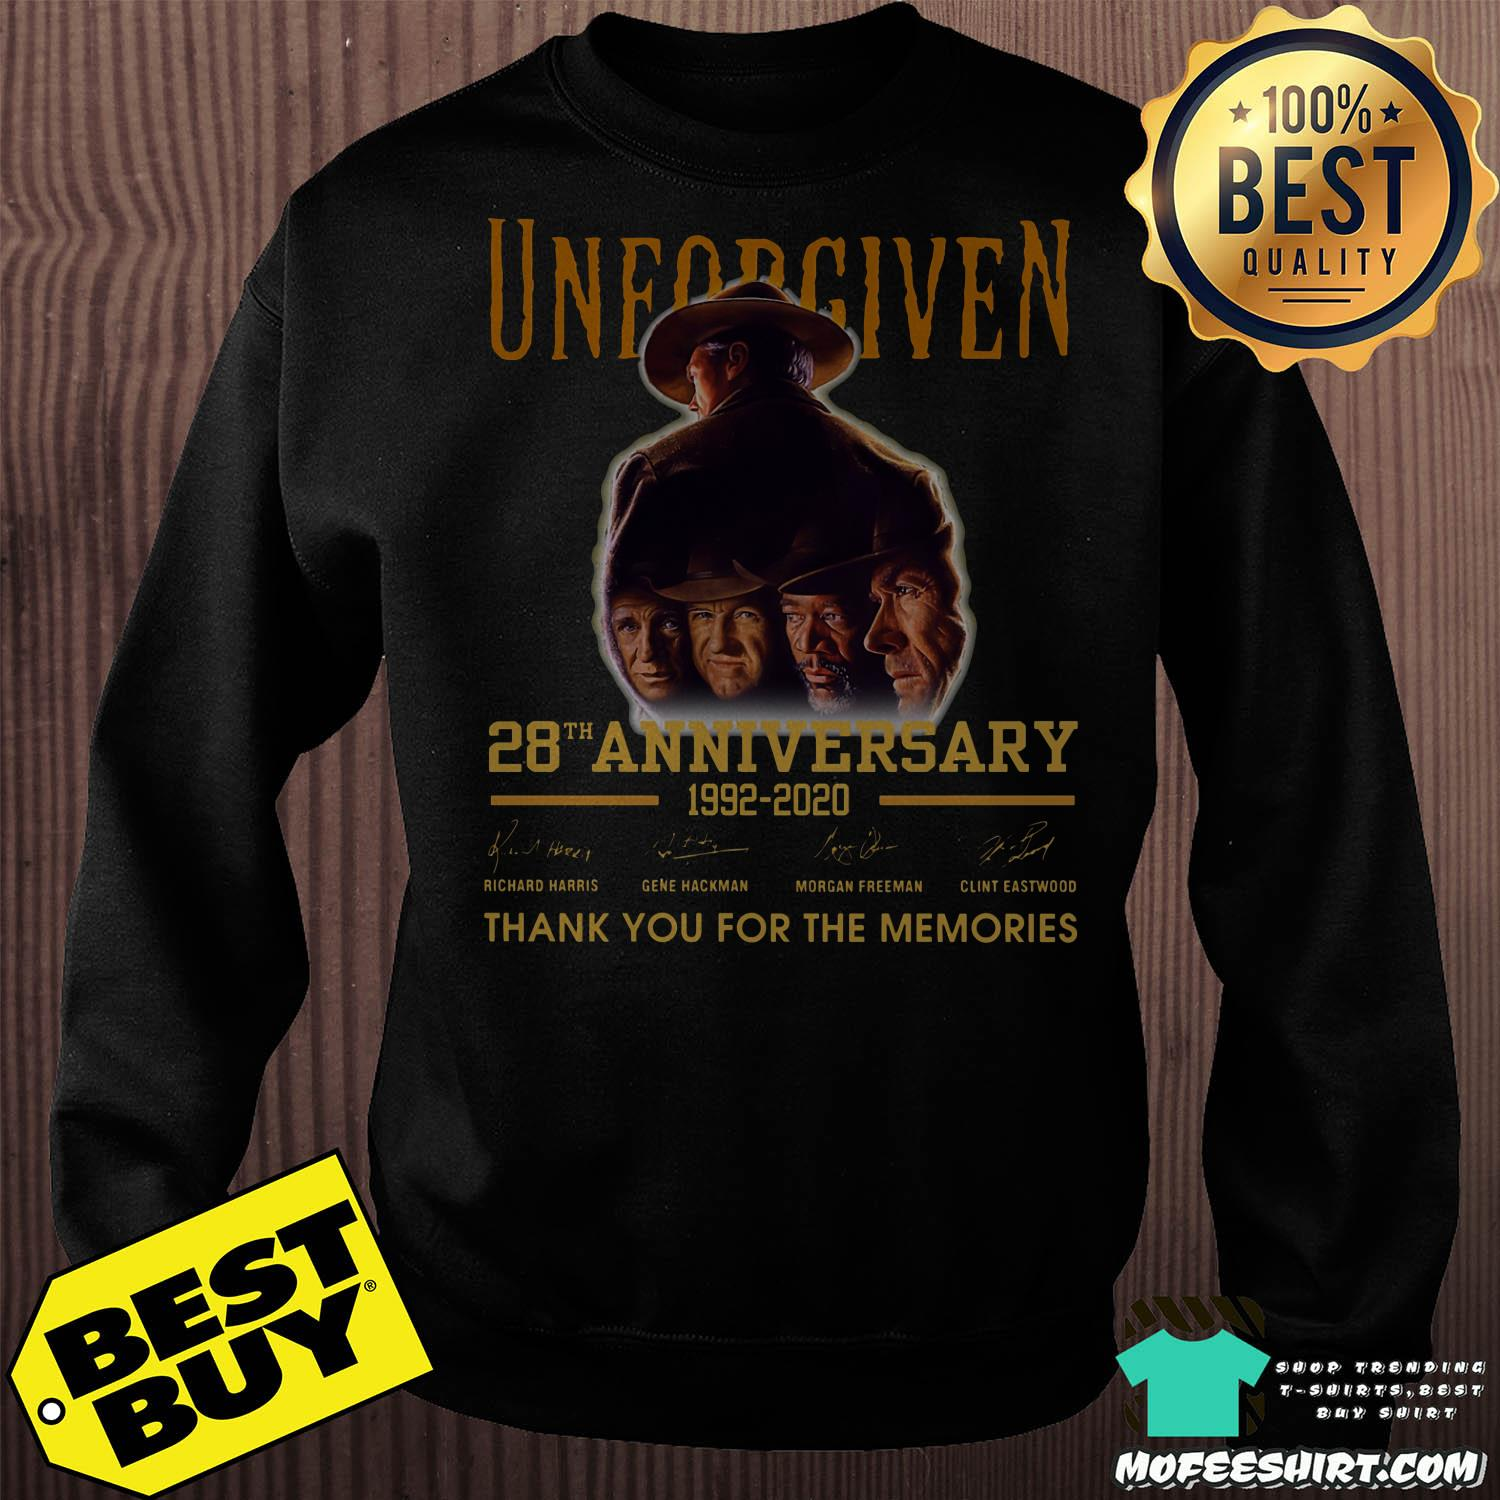 unforgiven 28th anniversary 1992 2020 signature thank you for the memories Sweater - Unforgiven 28th Anniversary 1992-2020 Signature Thank You For The Memories Shirt